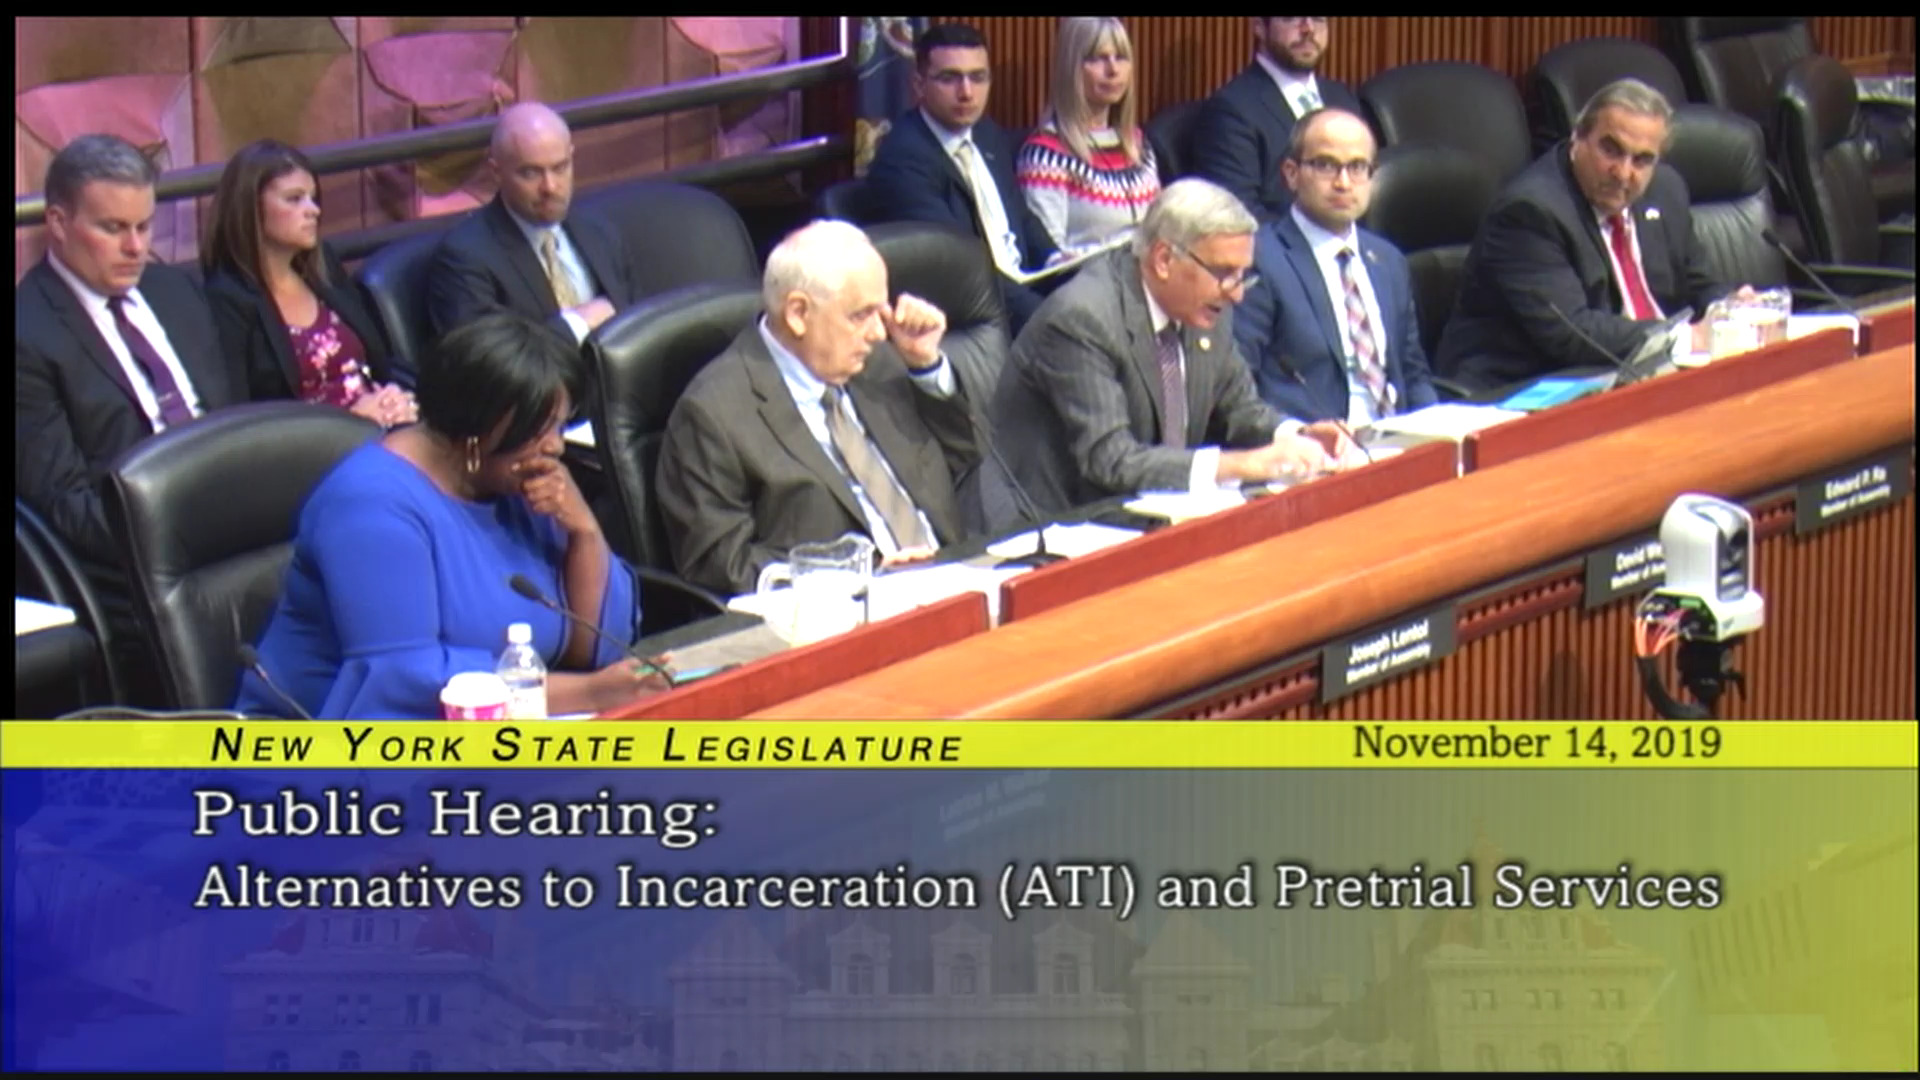 Public Hearing on Alternatives to Incarceration (ATI) and Pretrial Services (1)